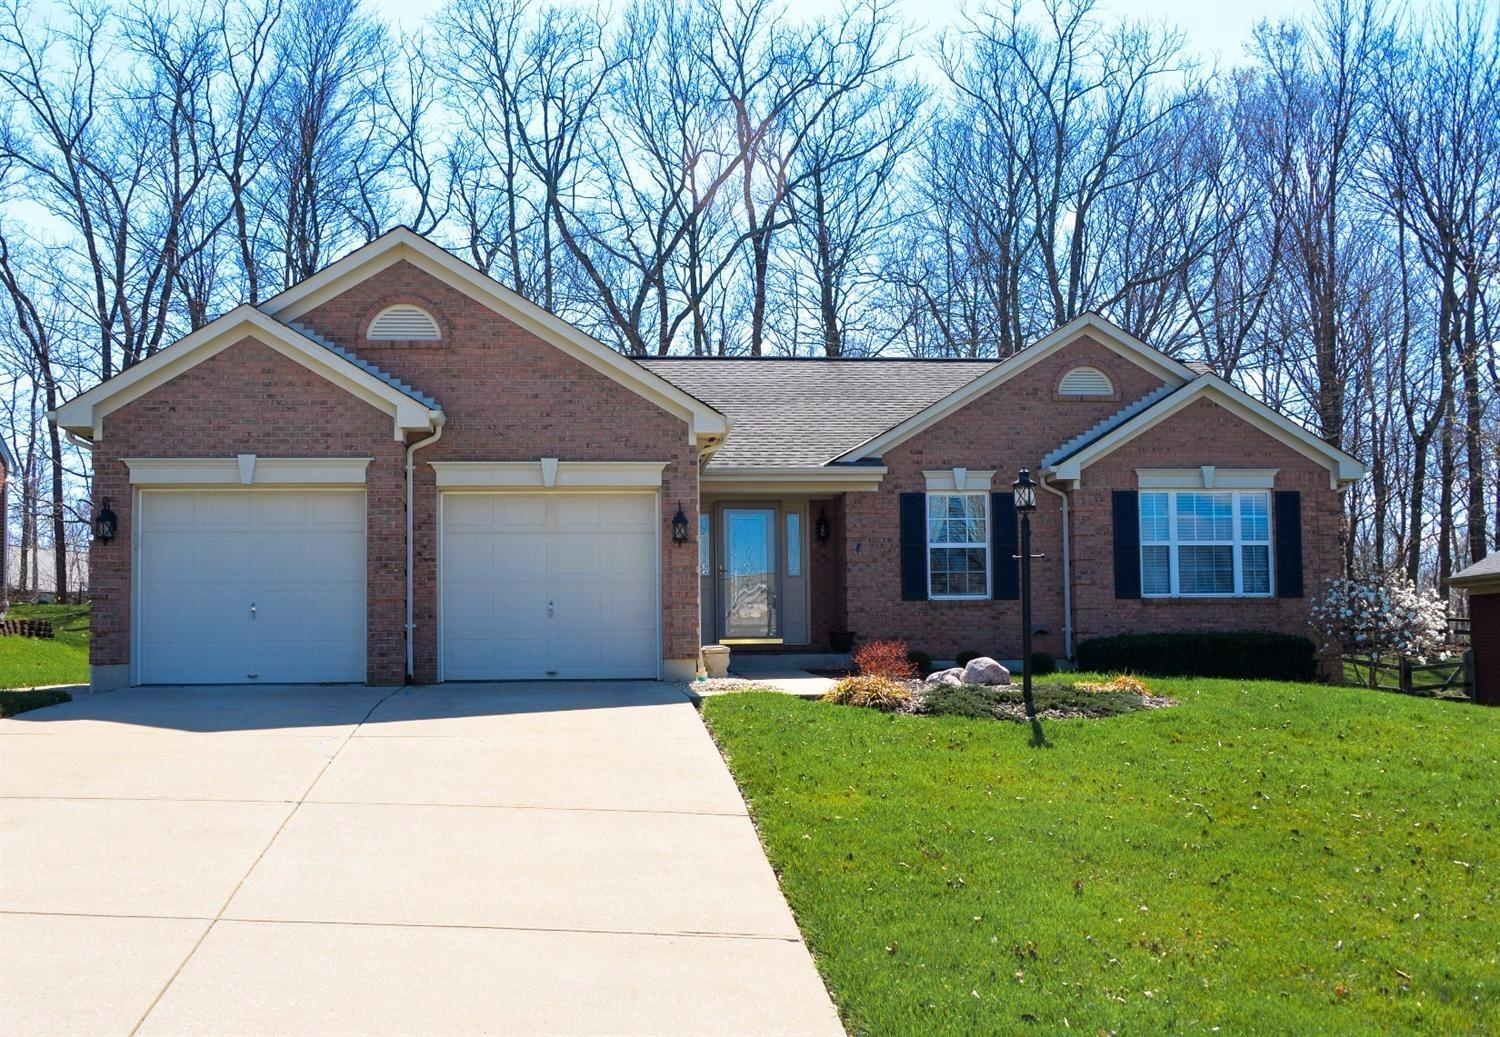 Photo 1 for 2114 Lynwood Pl Burlington, KY 41005